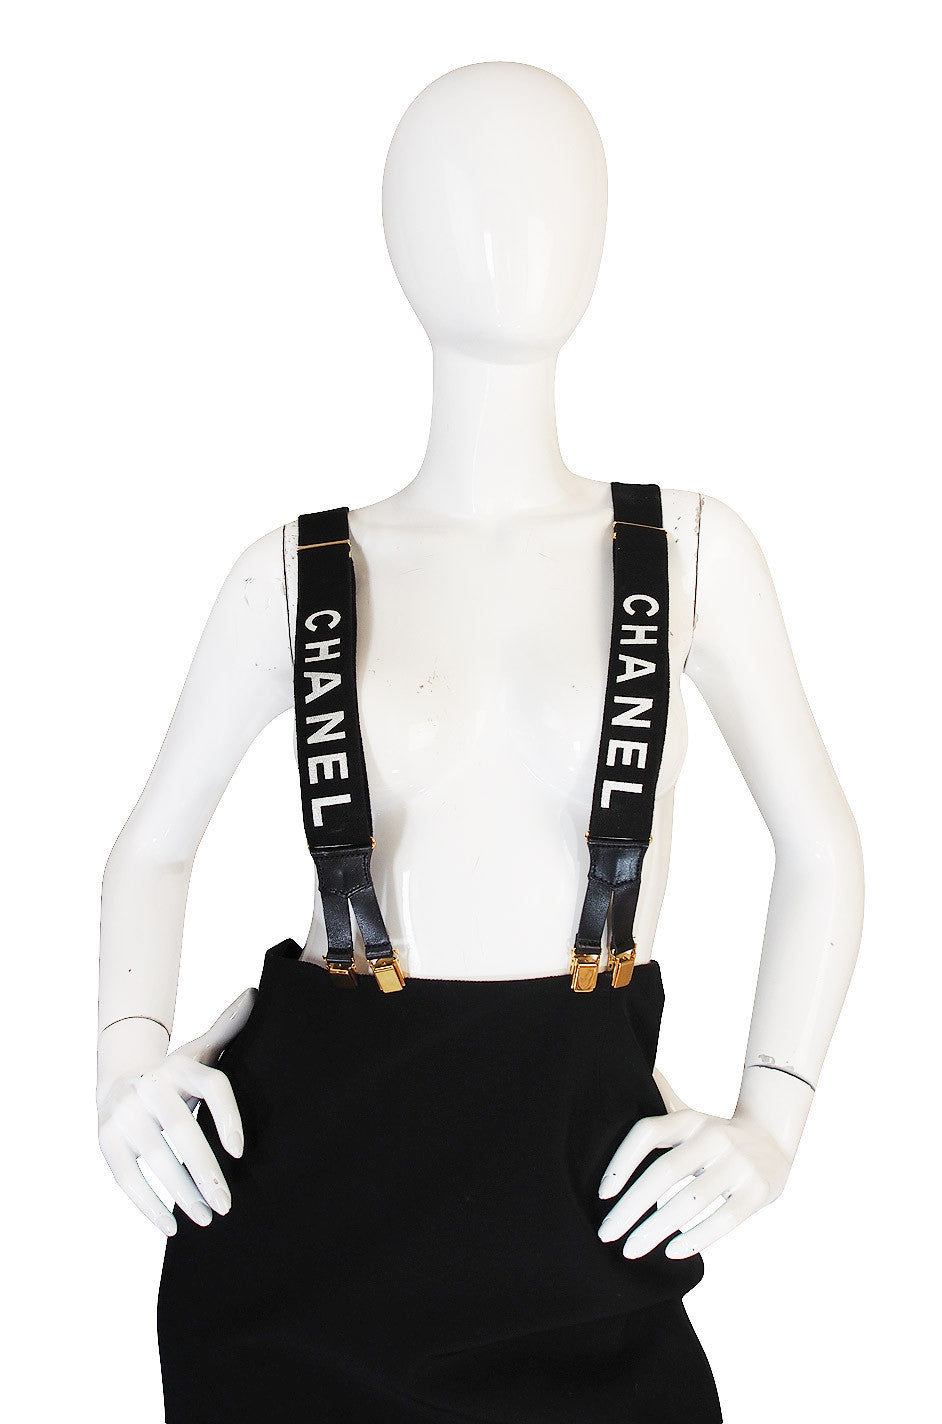 chanel suspenders. early 2000s iconic vintage chanel suspenders